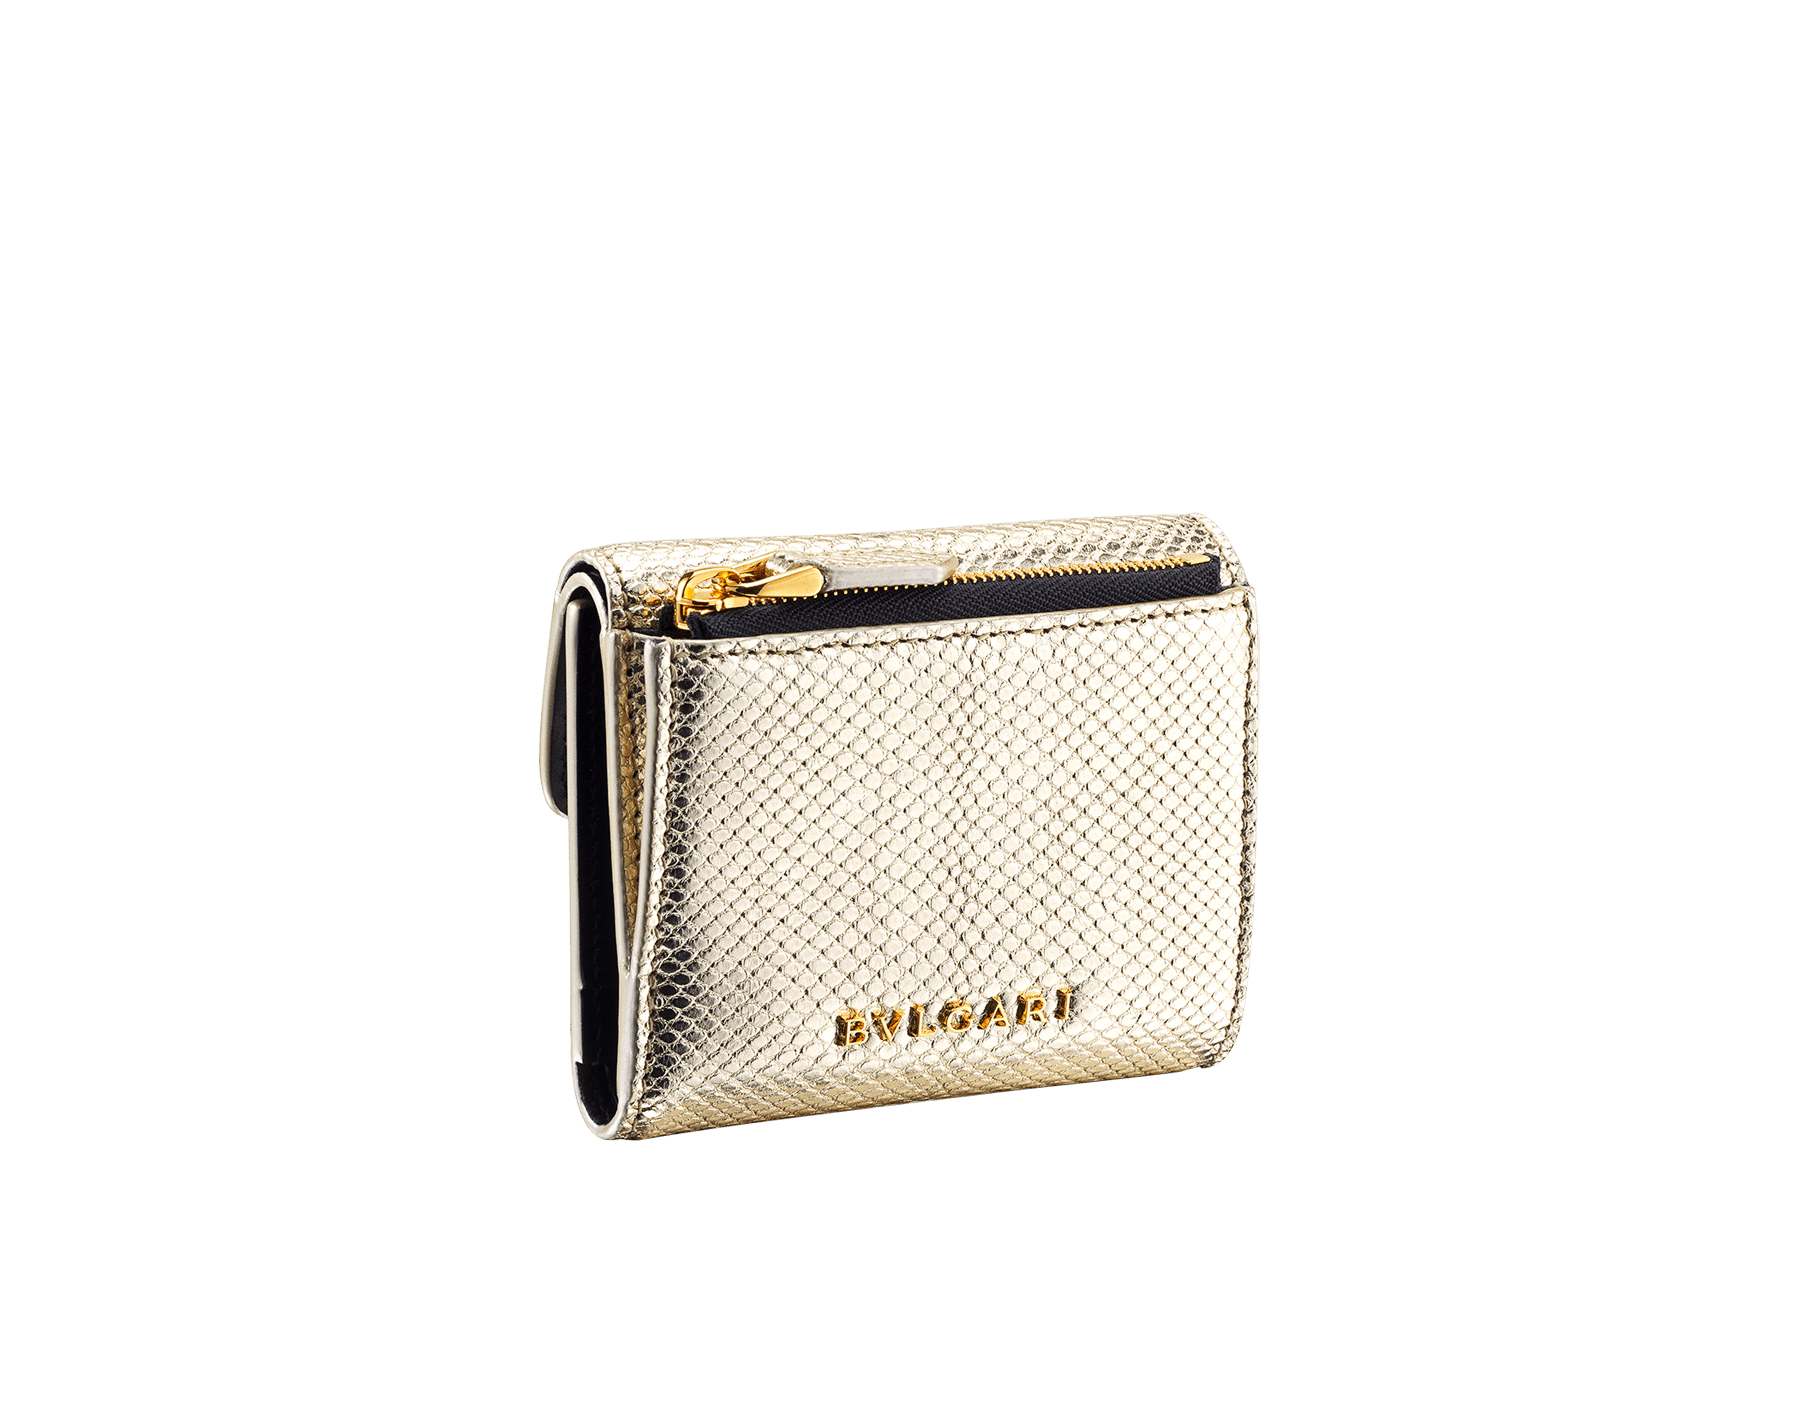 """Slender, compact """"Serpenti Forever"""" wallet in """"Molten"""" gold karung skin and black calfskin, offering a touch of radiance for the Winter Holidays. New Serpenti head closure in gold-plated brass, complete with ruby-red enamel eyes. SEA-SLIMCOMPACT-MoltK image 3"""